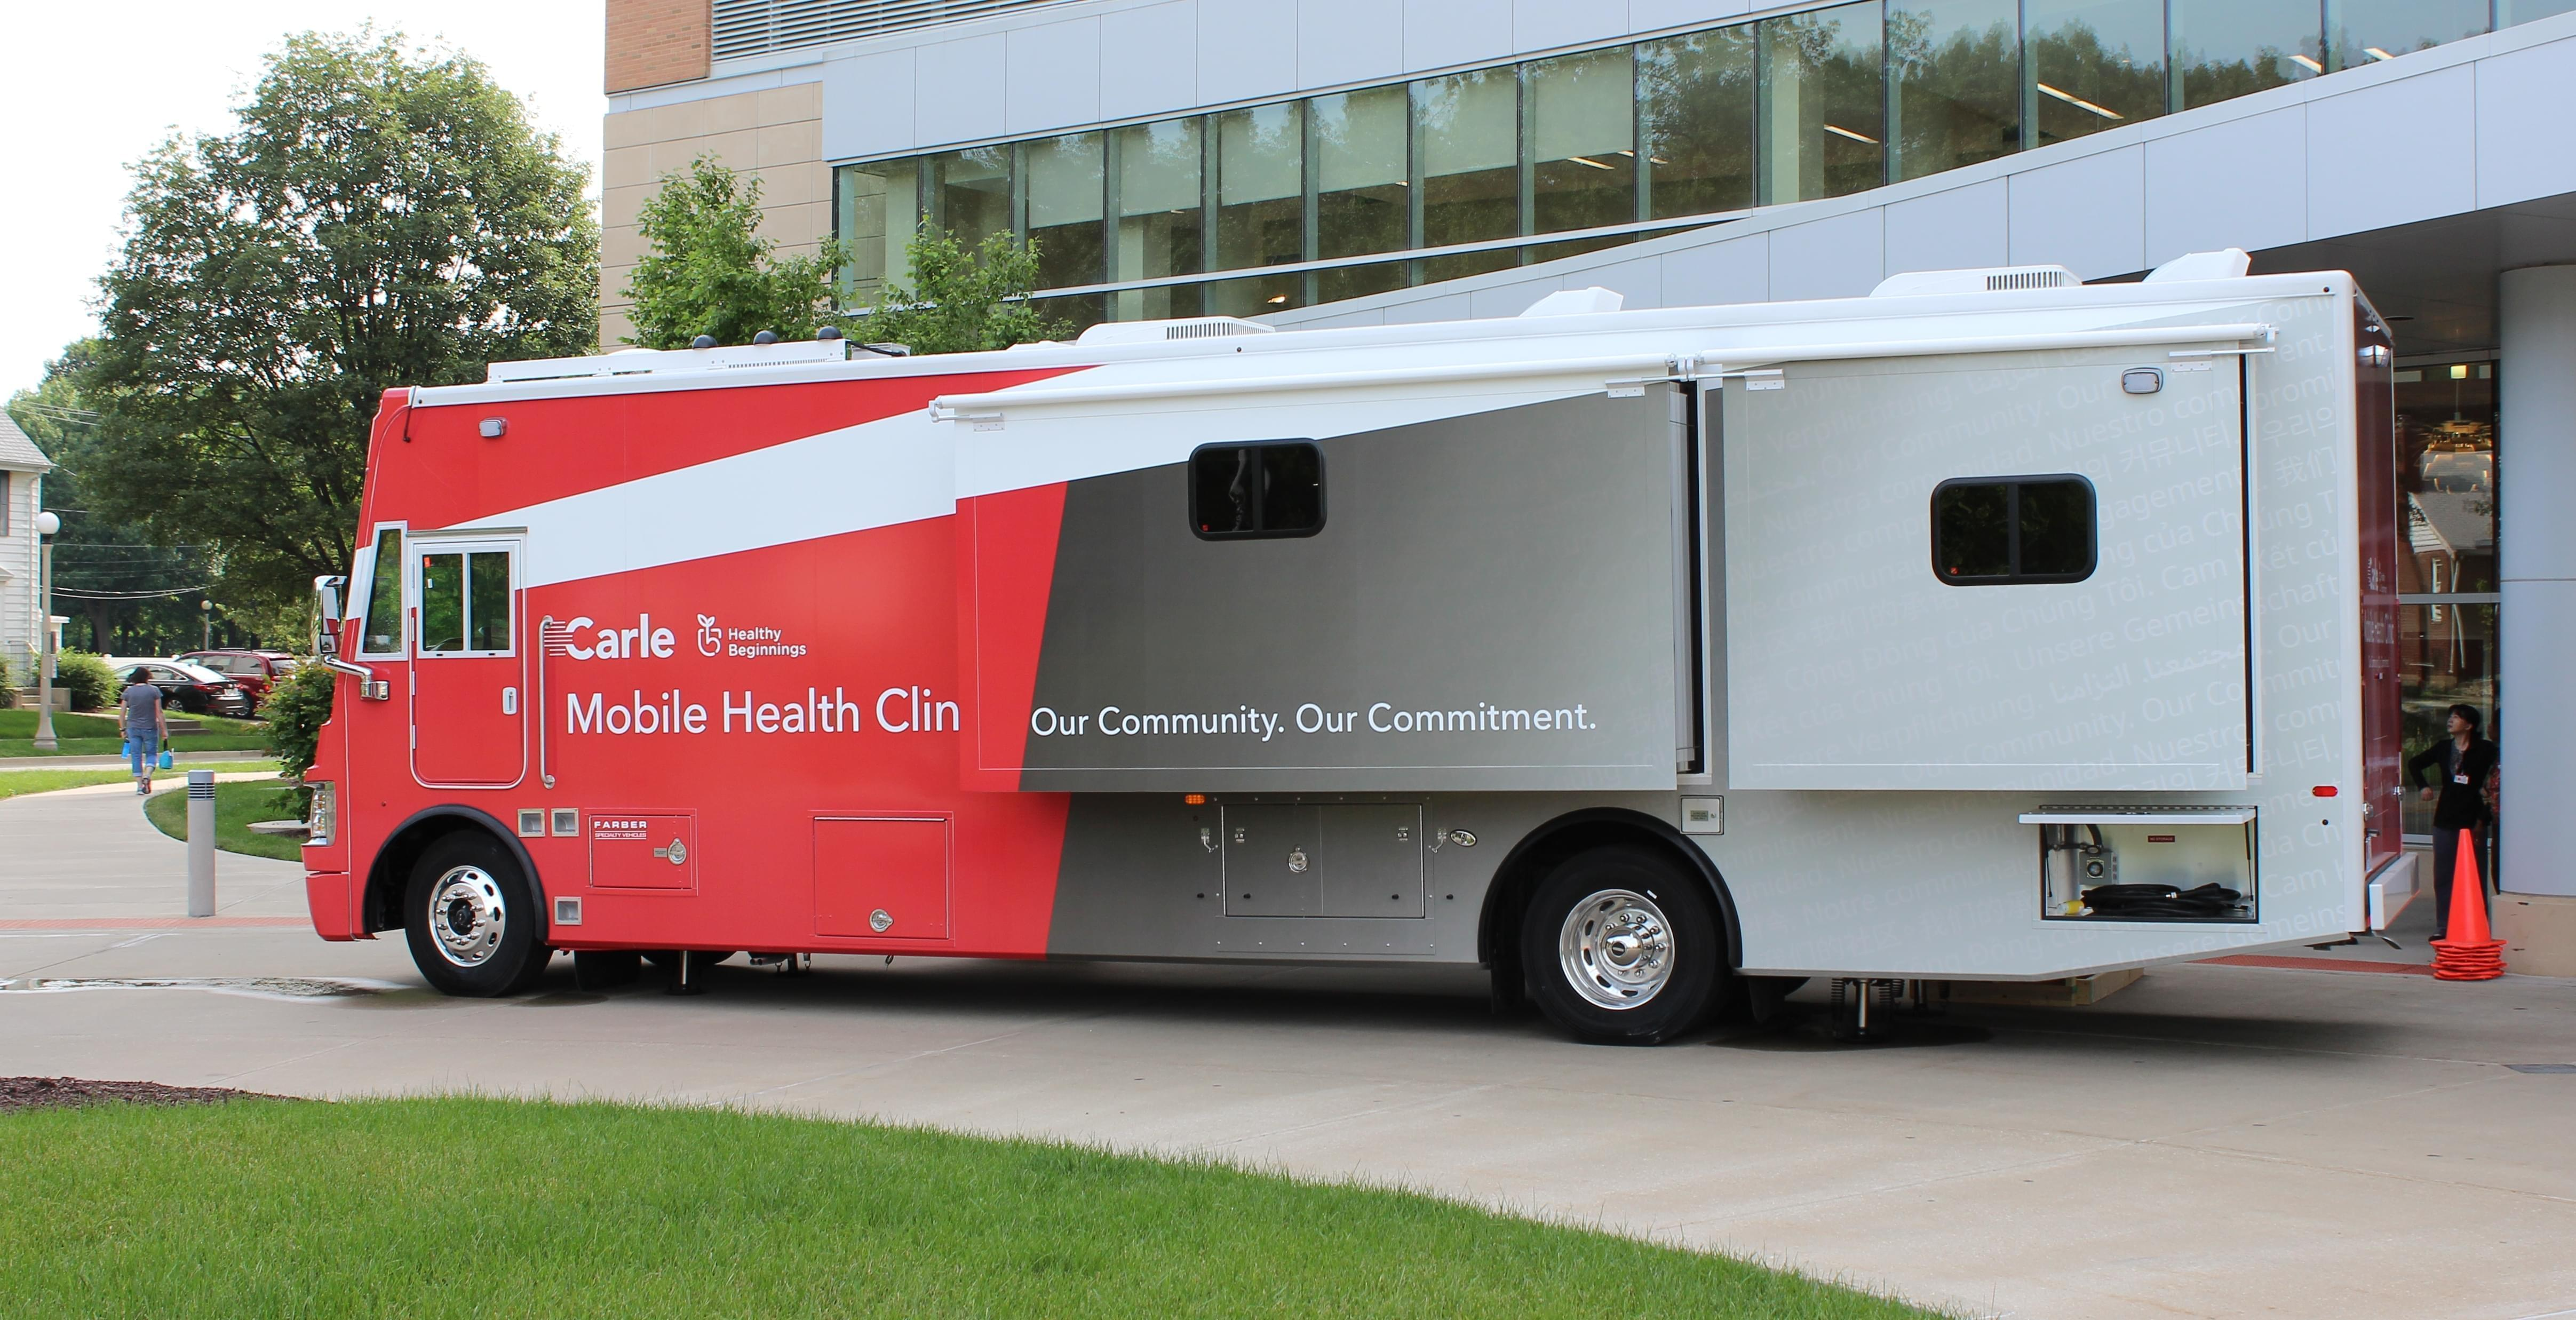 Carle mobile health clinic